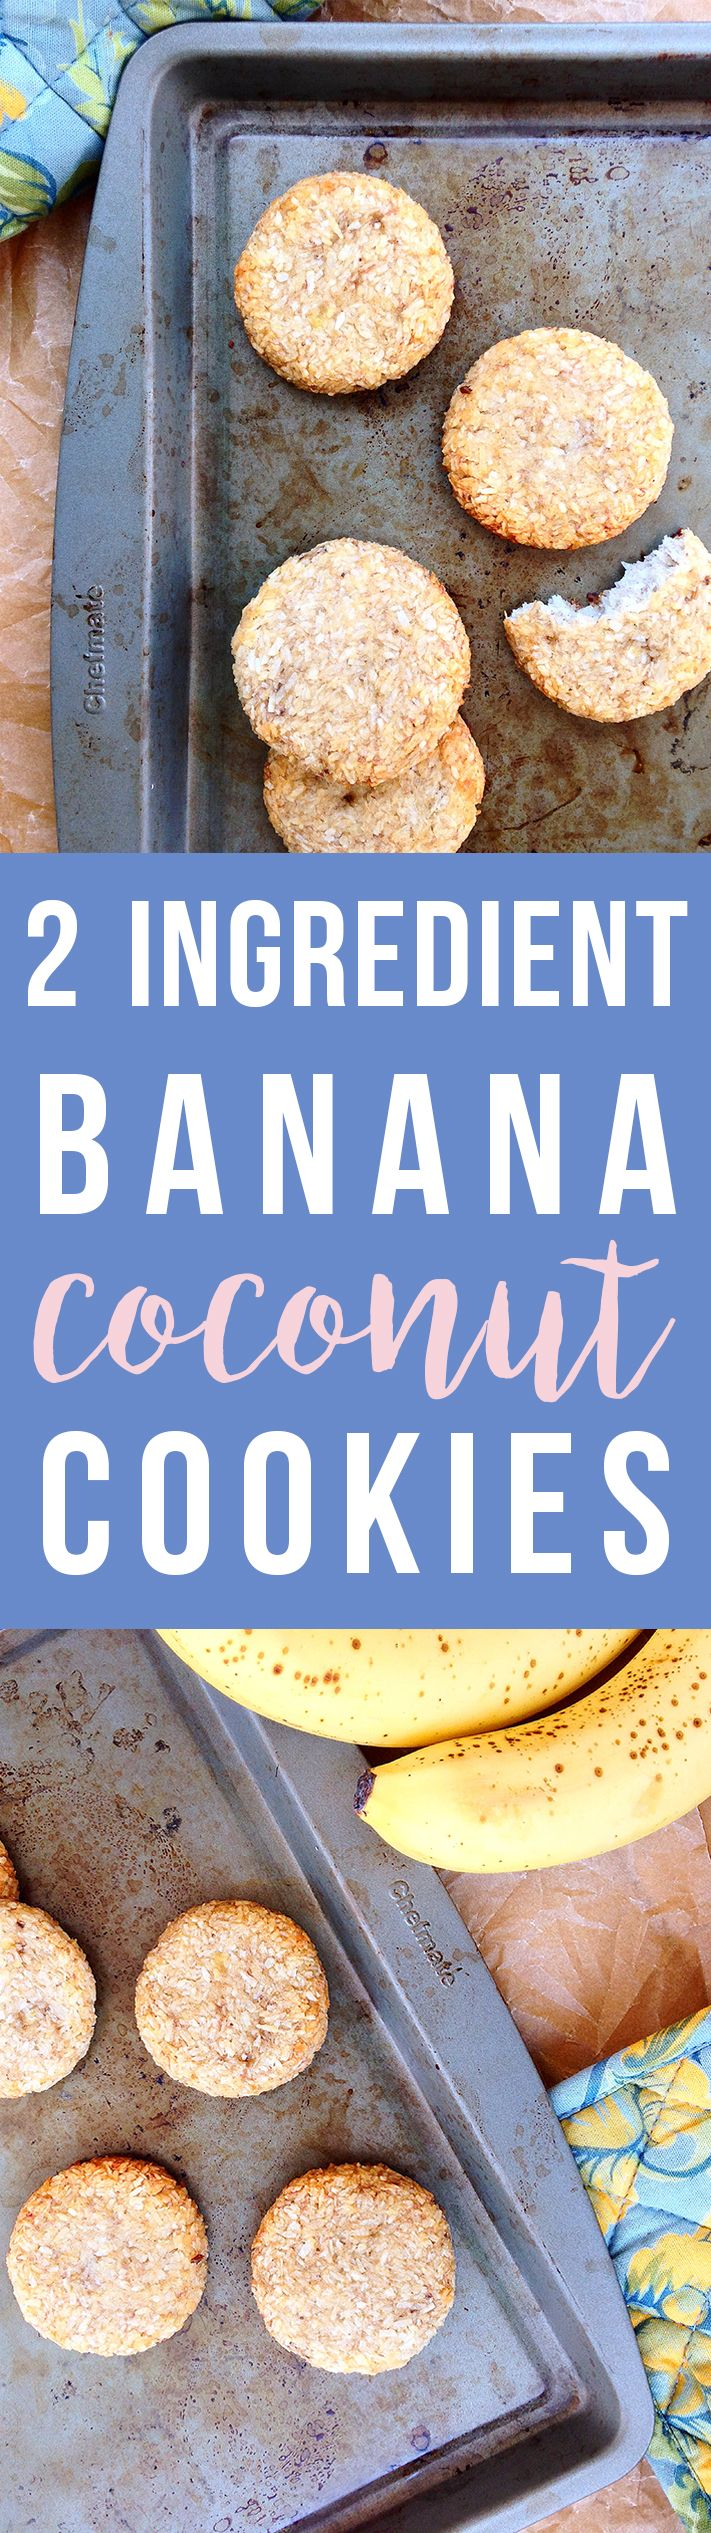 These easy 2 Ingredient Banana Coconut Cookies are simple and delicious